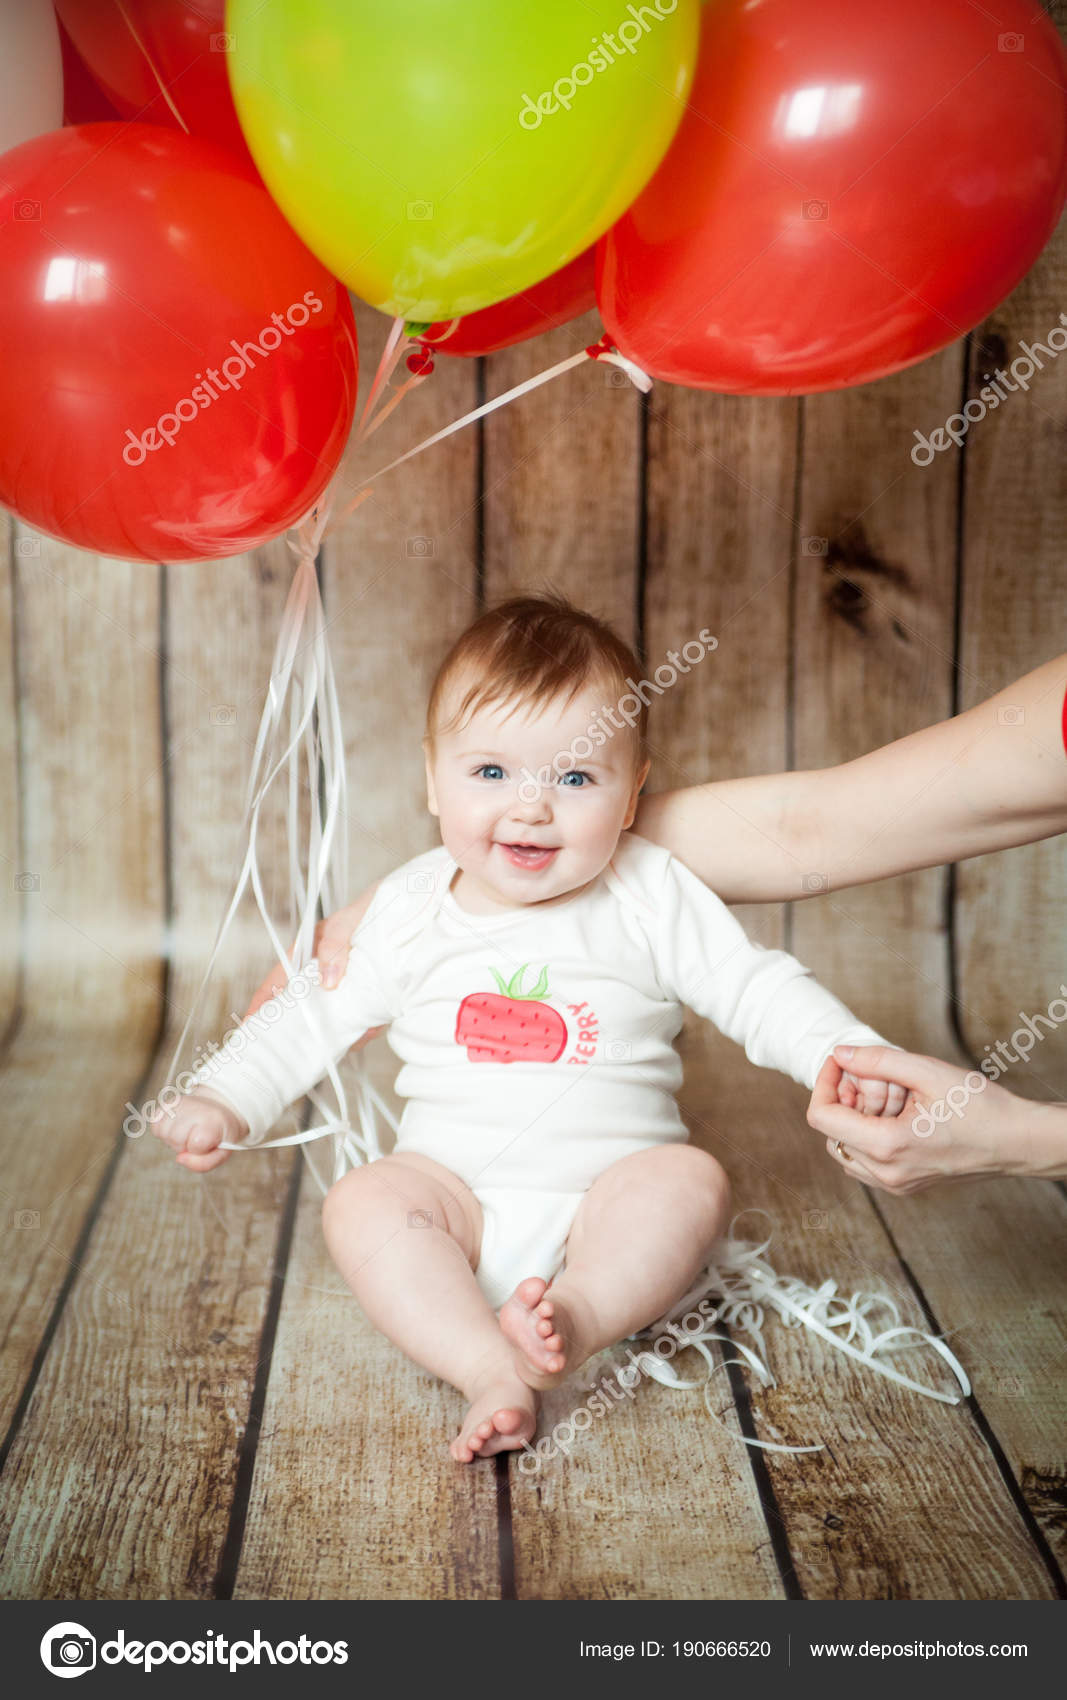 Mini Birthday With Strawberry Theme Cute 6 Months Baby Girl Colorful Balloons Photo By Gorchichko